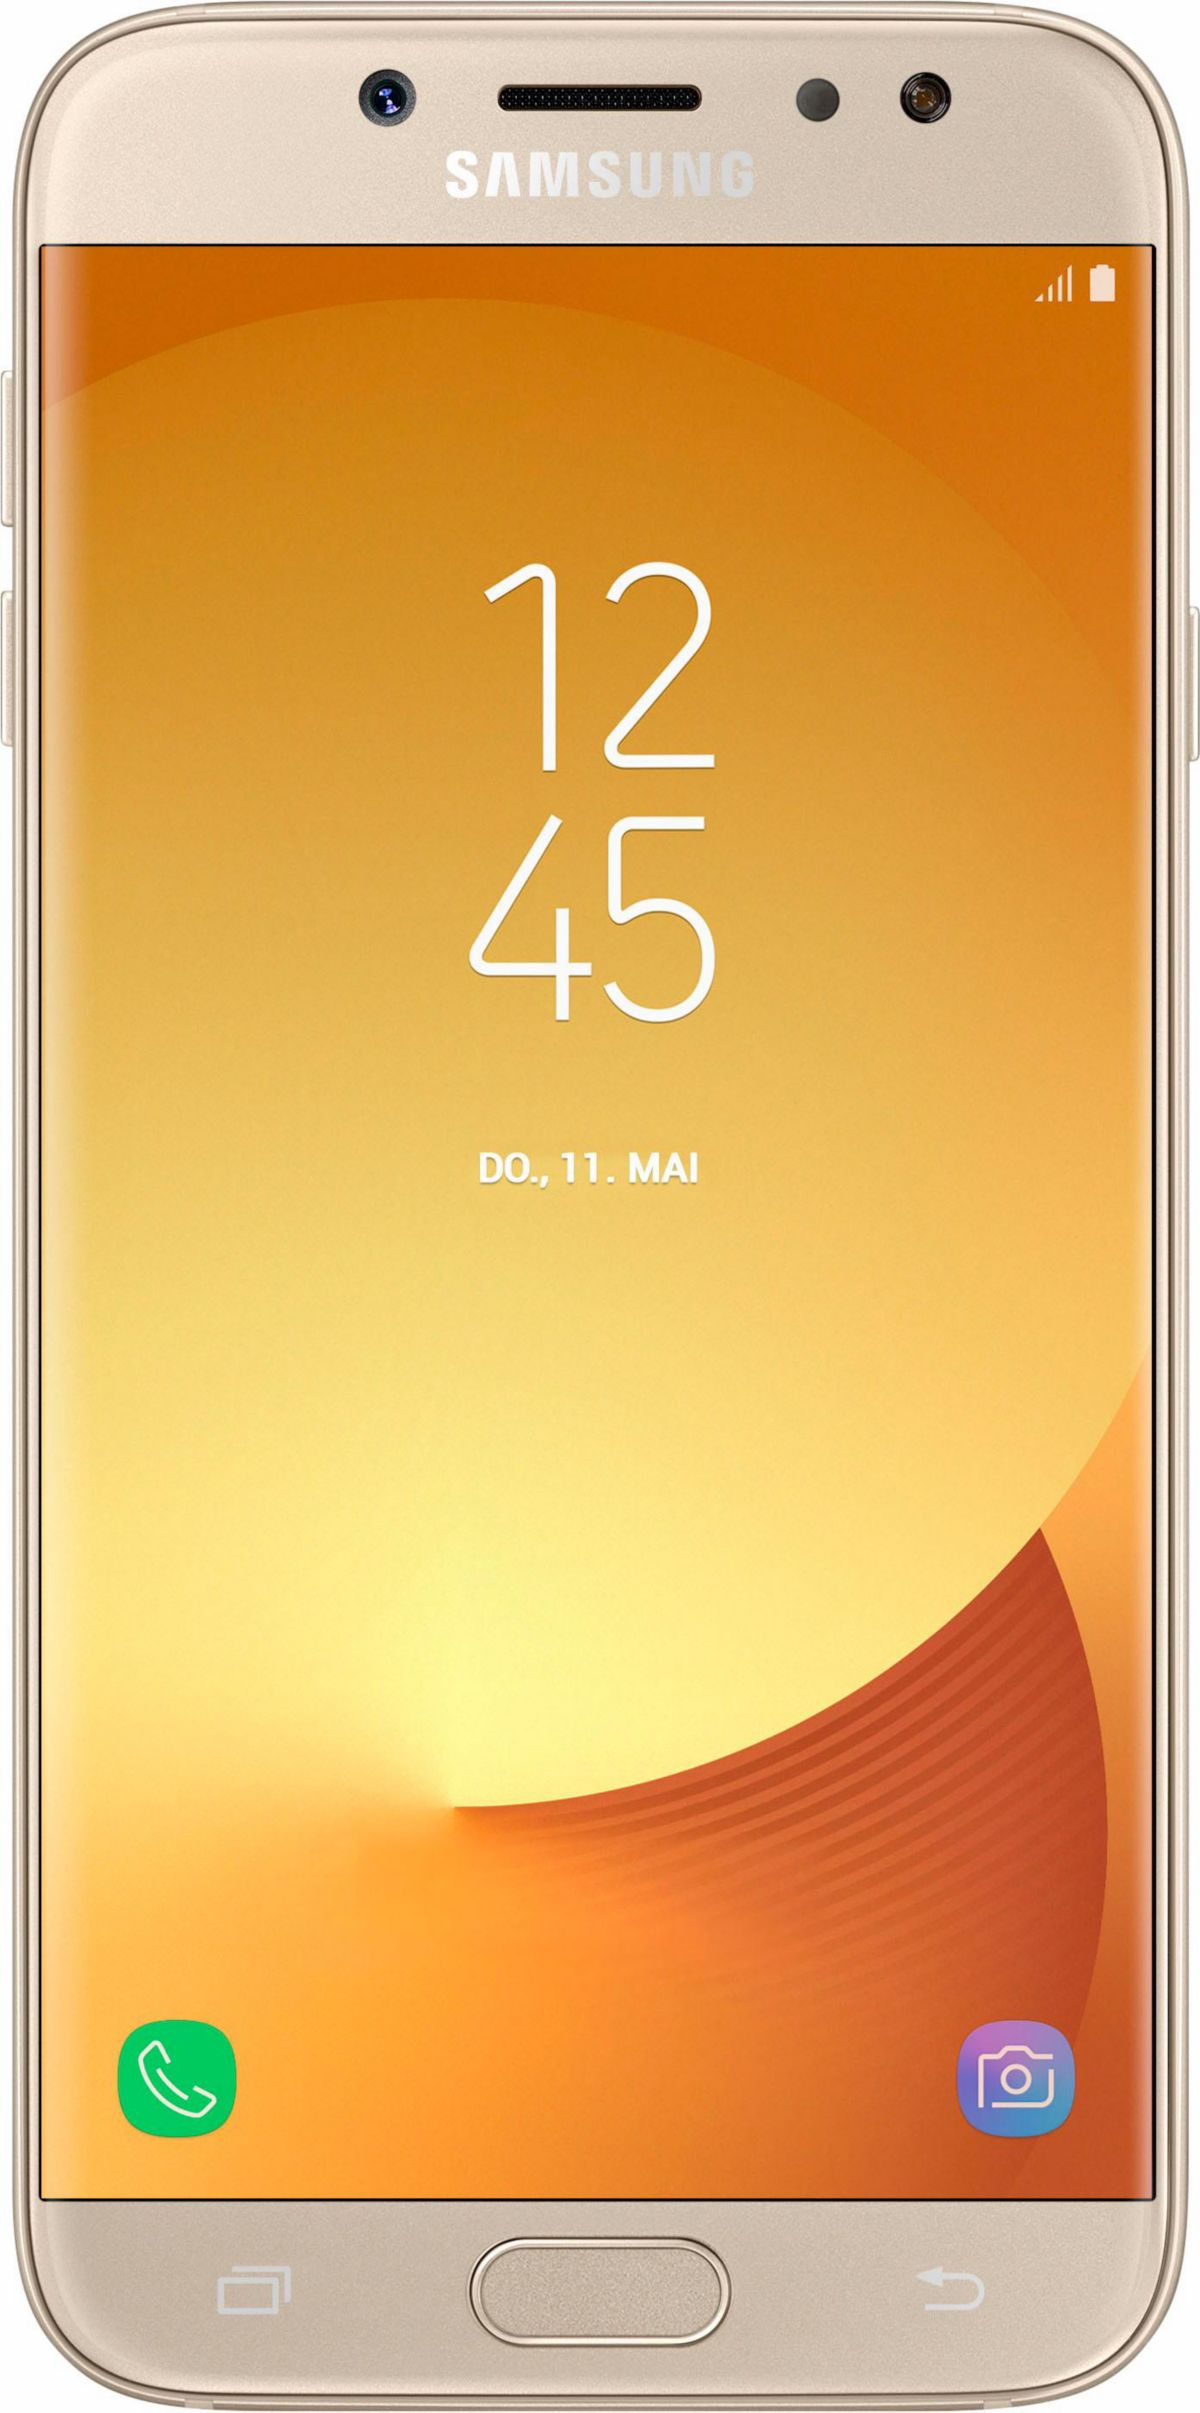 Samsung Galaxy J7 2017 DUOS Smartphone 13 9 cm 5 5 Zoll Display LTE 4G Android 7 0